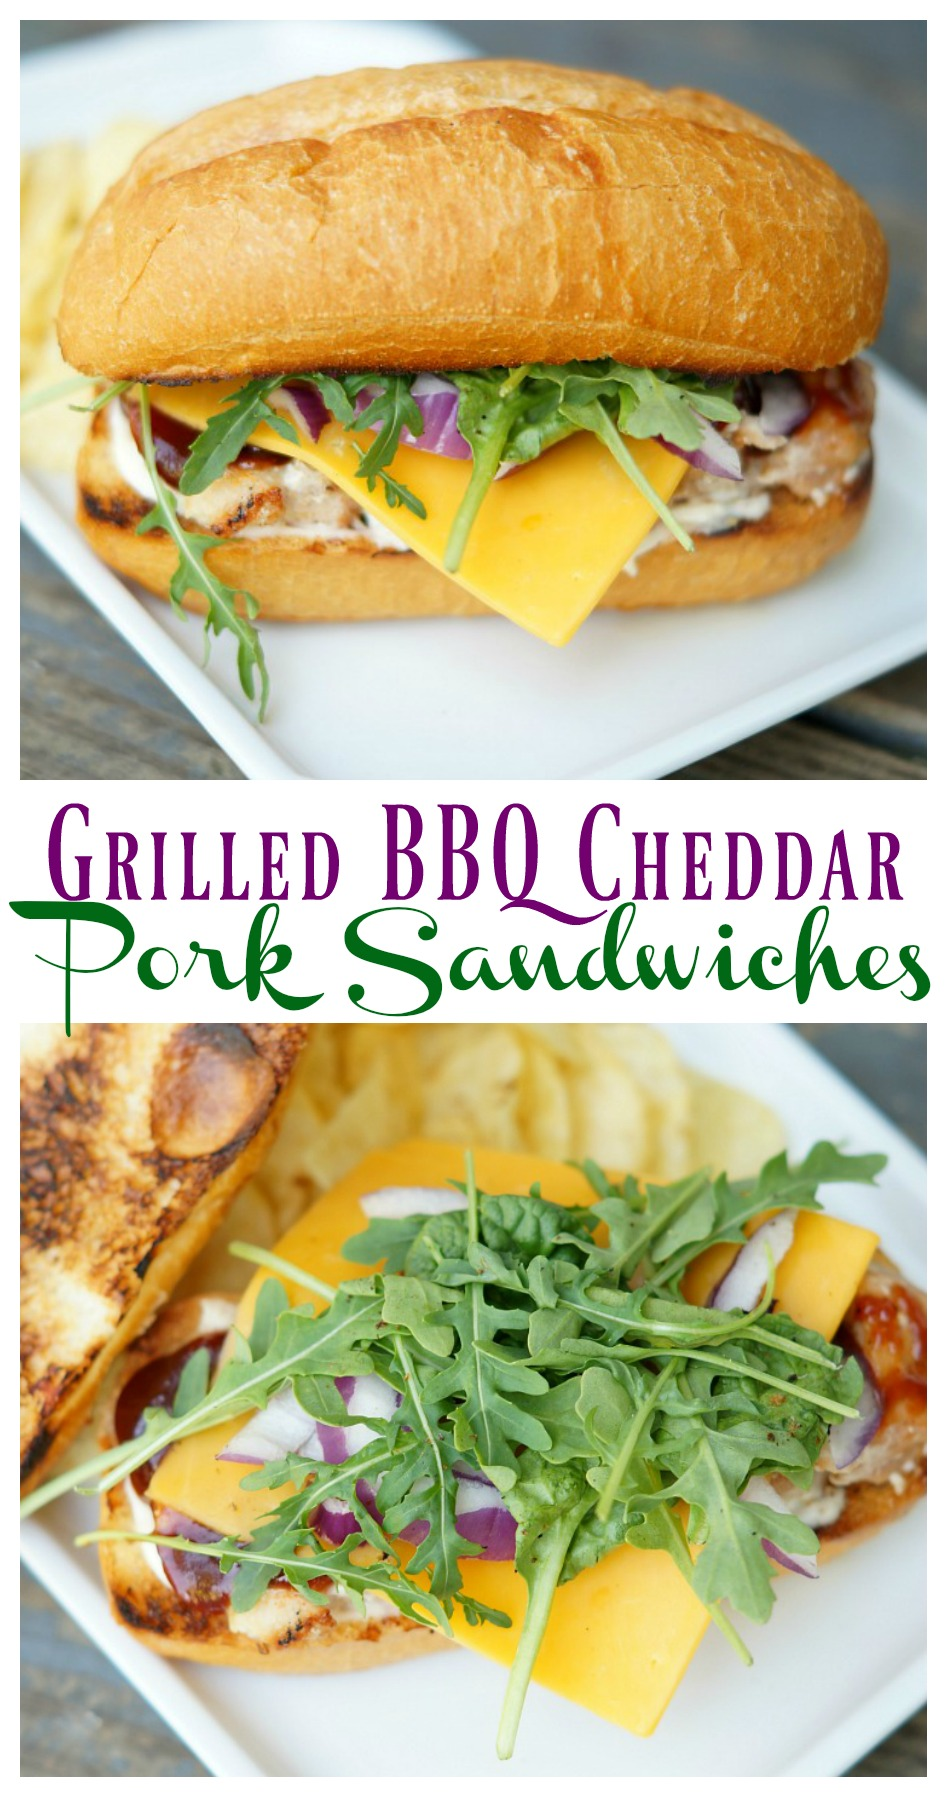 Grilled BBQ Cheddar Pork Sandwiches